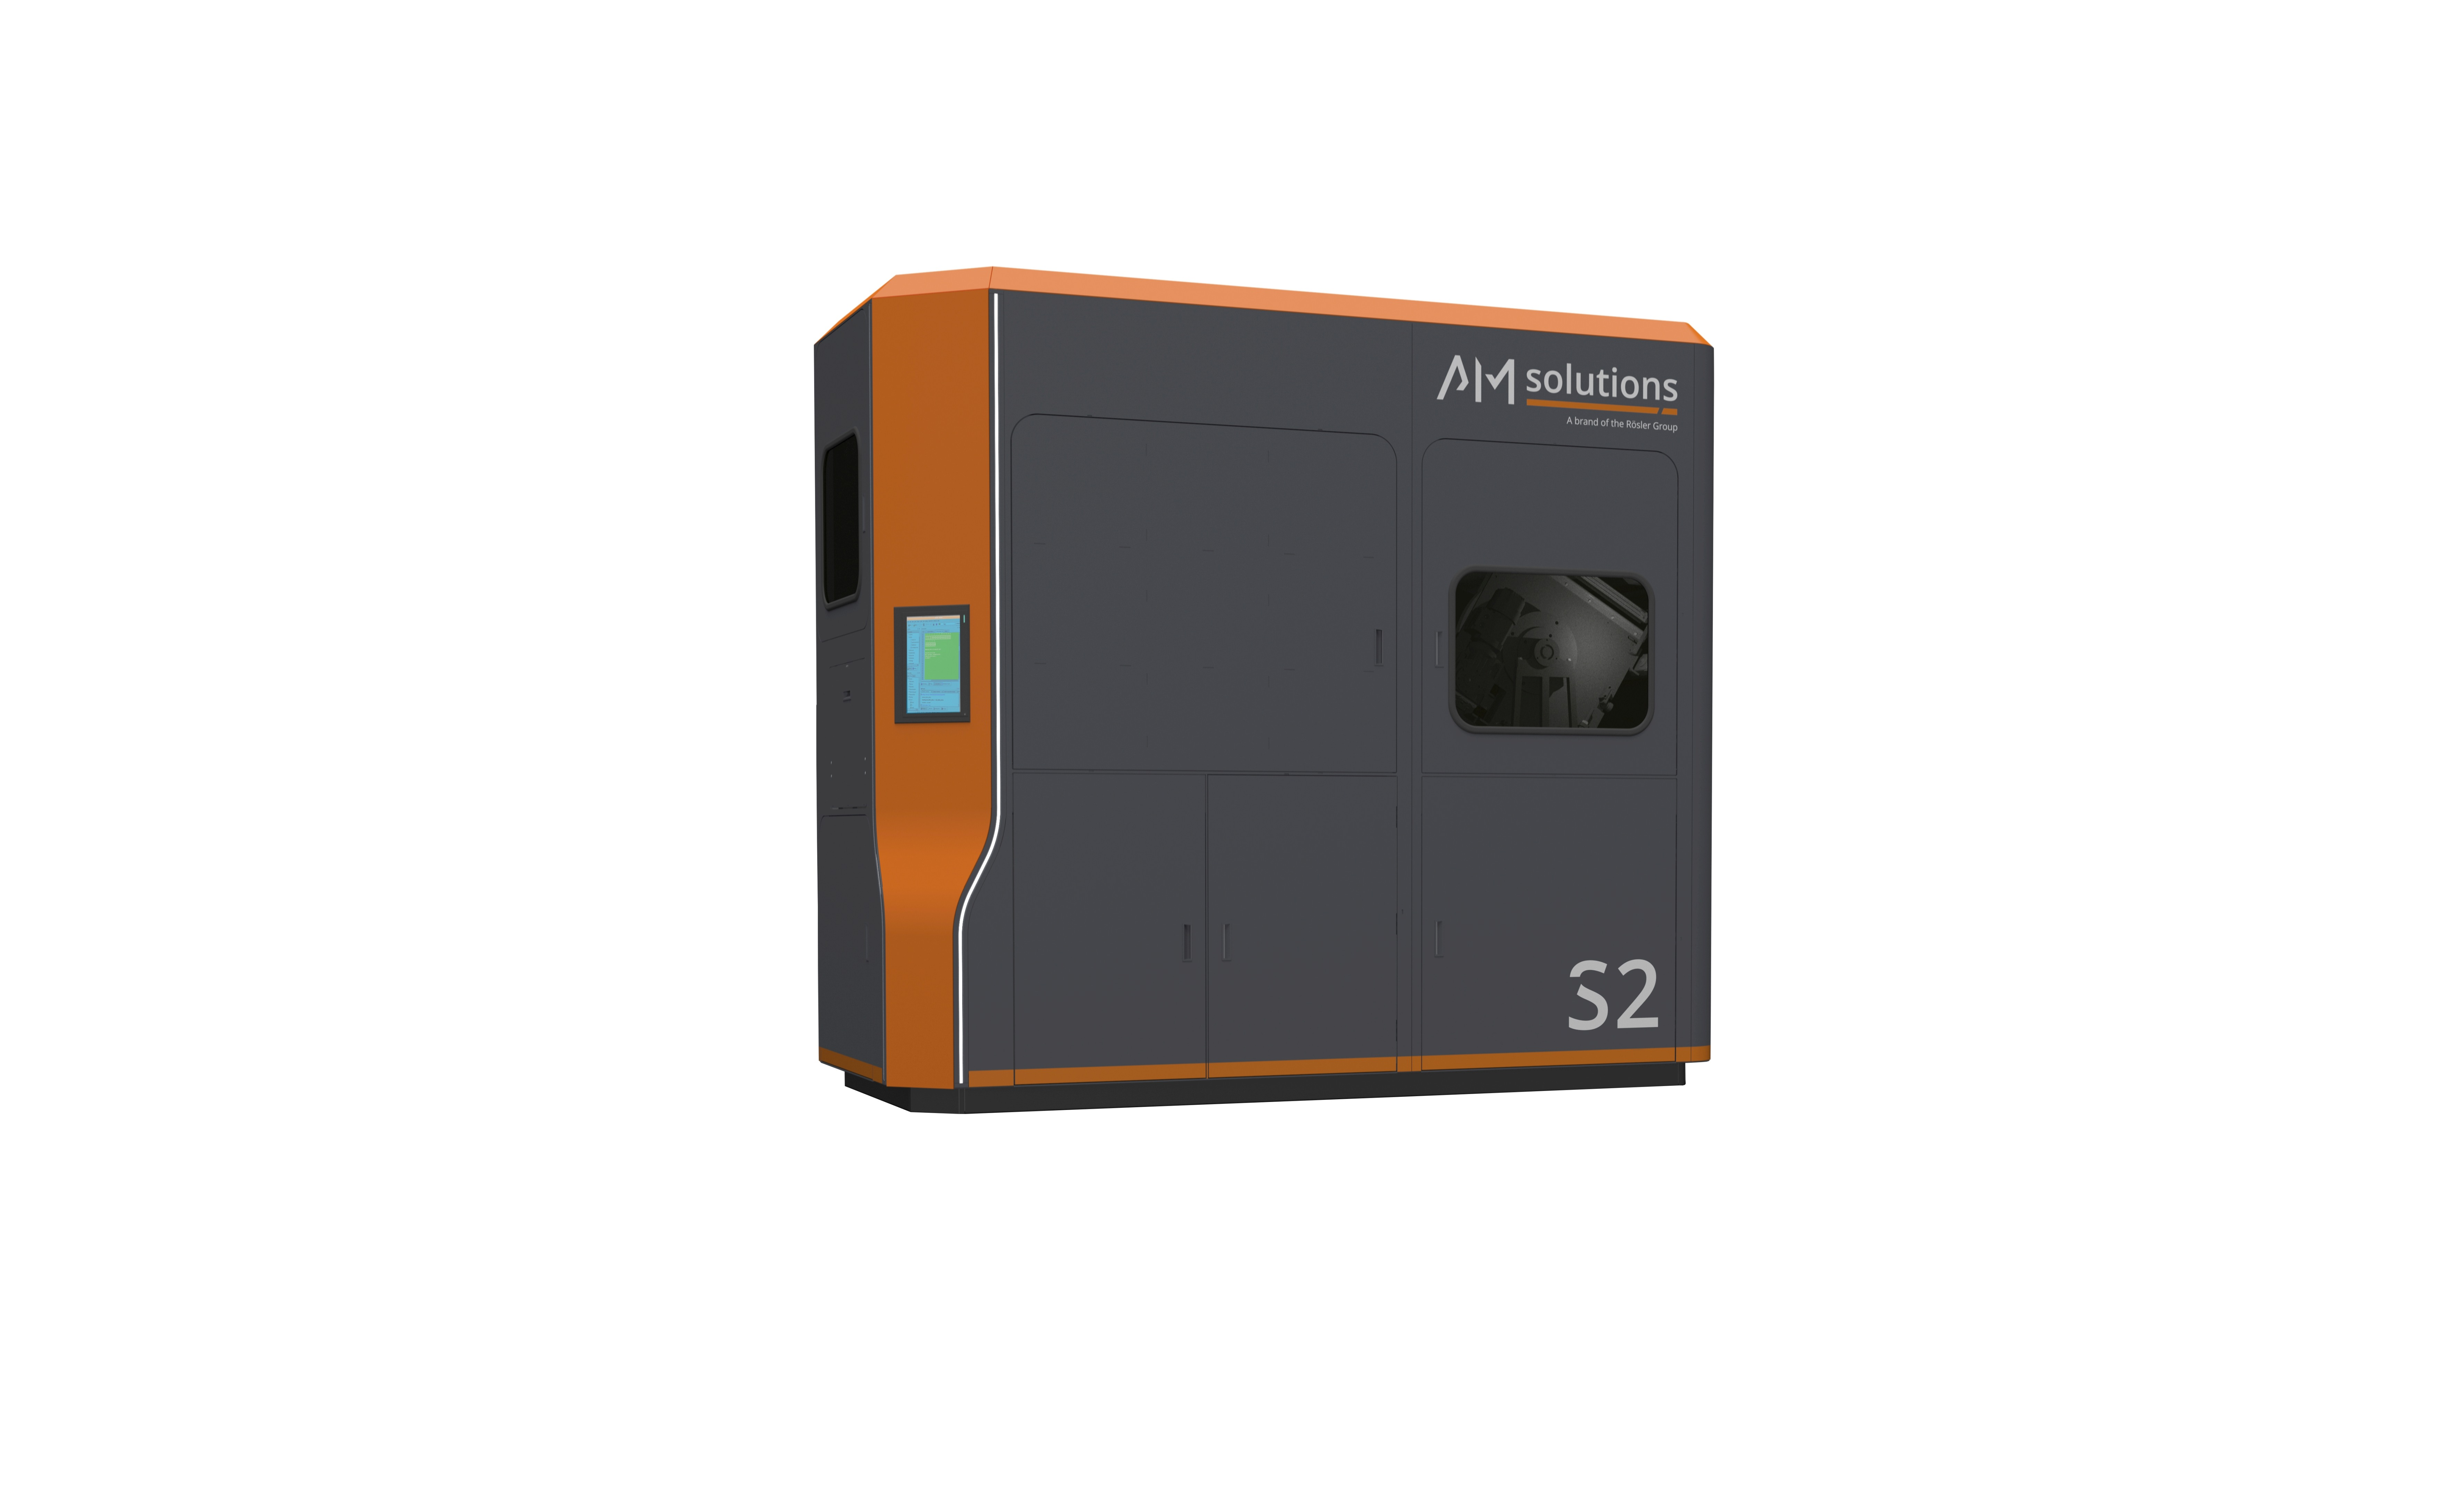 The S2 3D post processing offers system. Photo via AM Solutions.